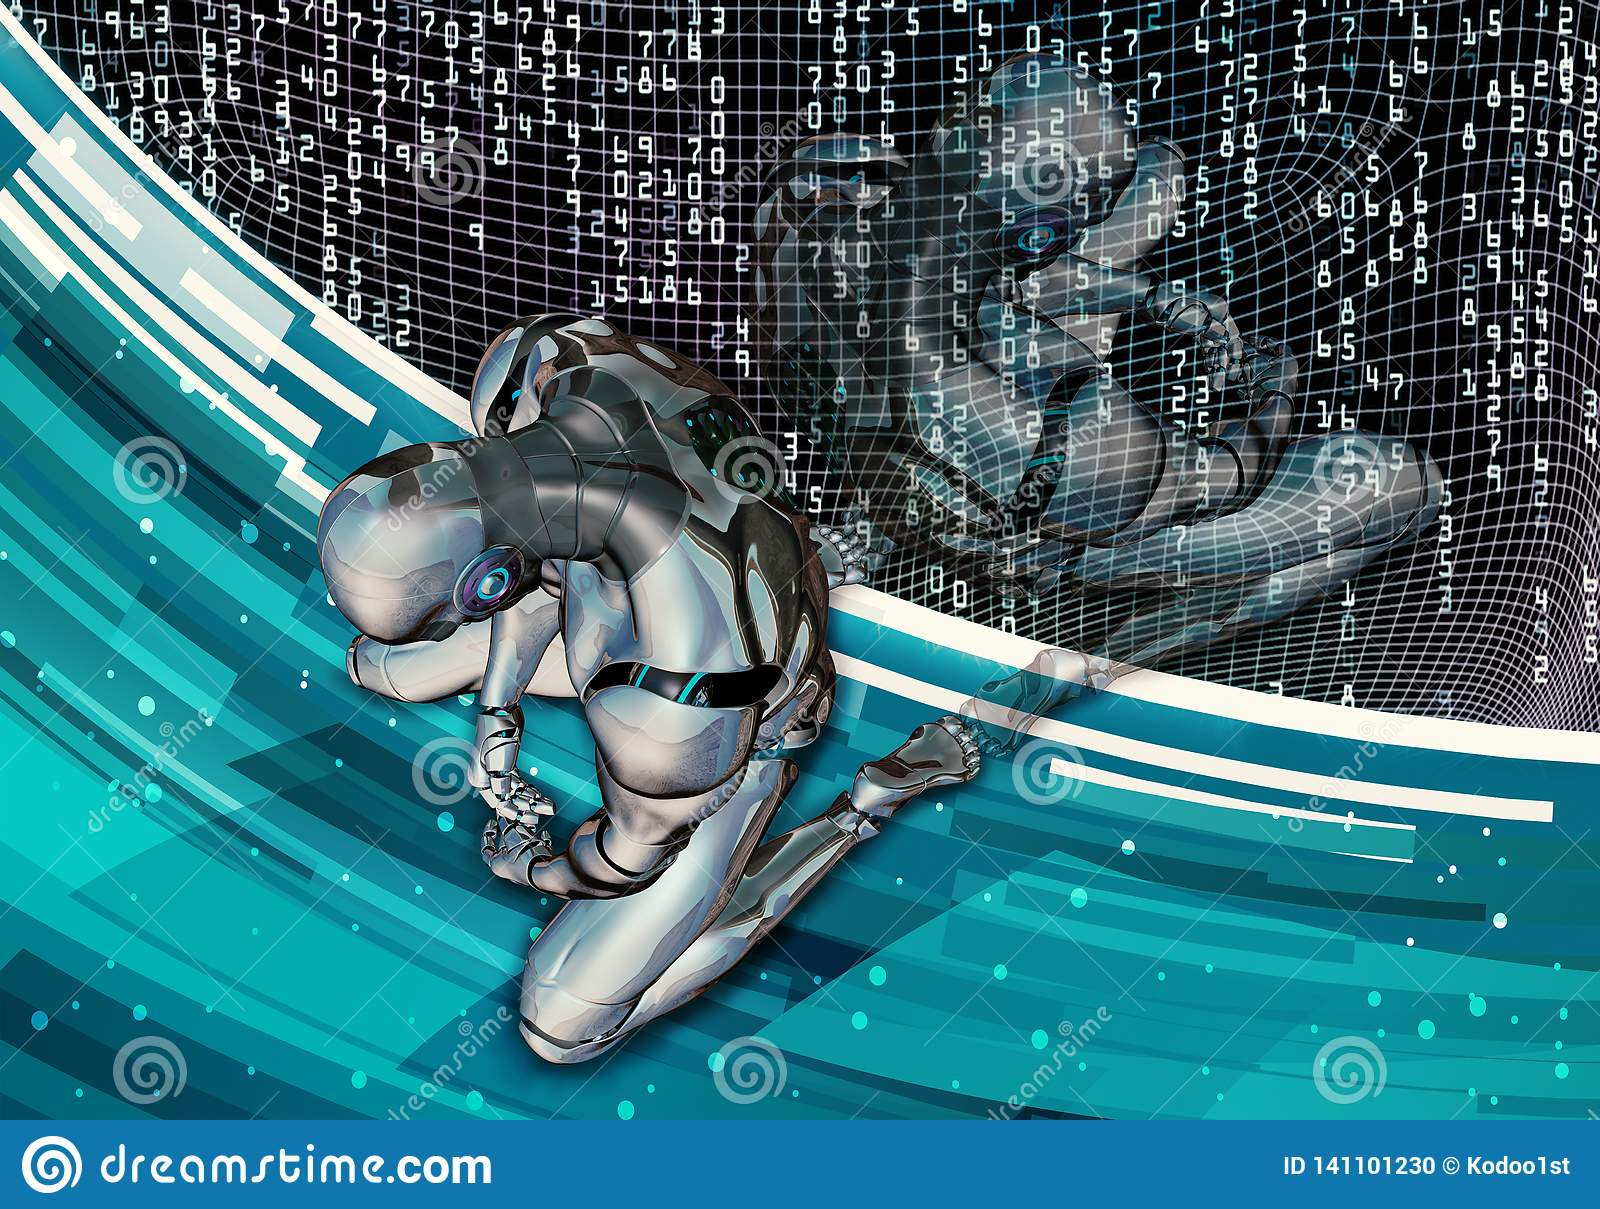 Abstract Artistic 3d Computer Generated Illustration Of A Depressed Artificial Intelligent Man Setting In Defeat On A Modern Data